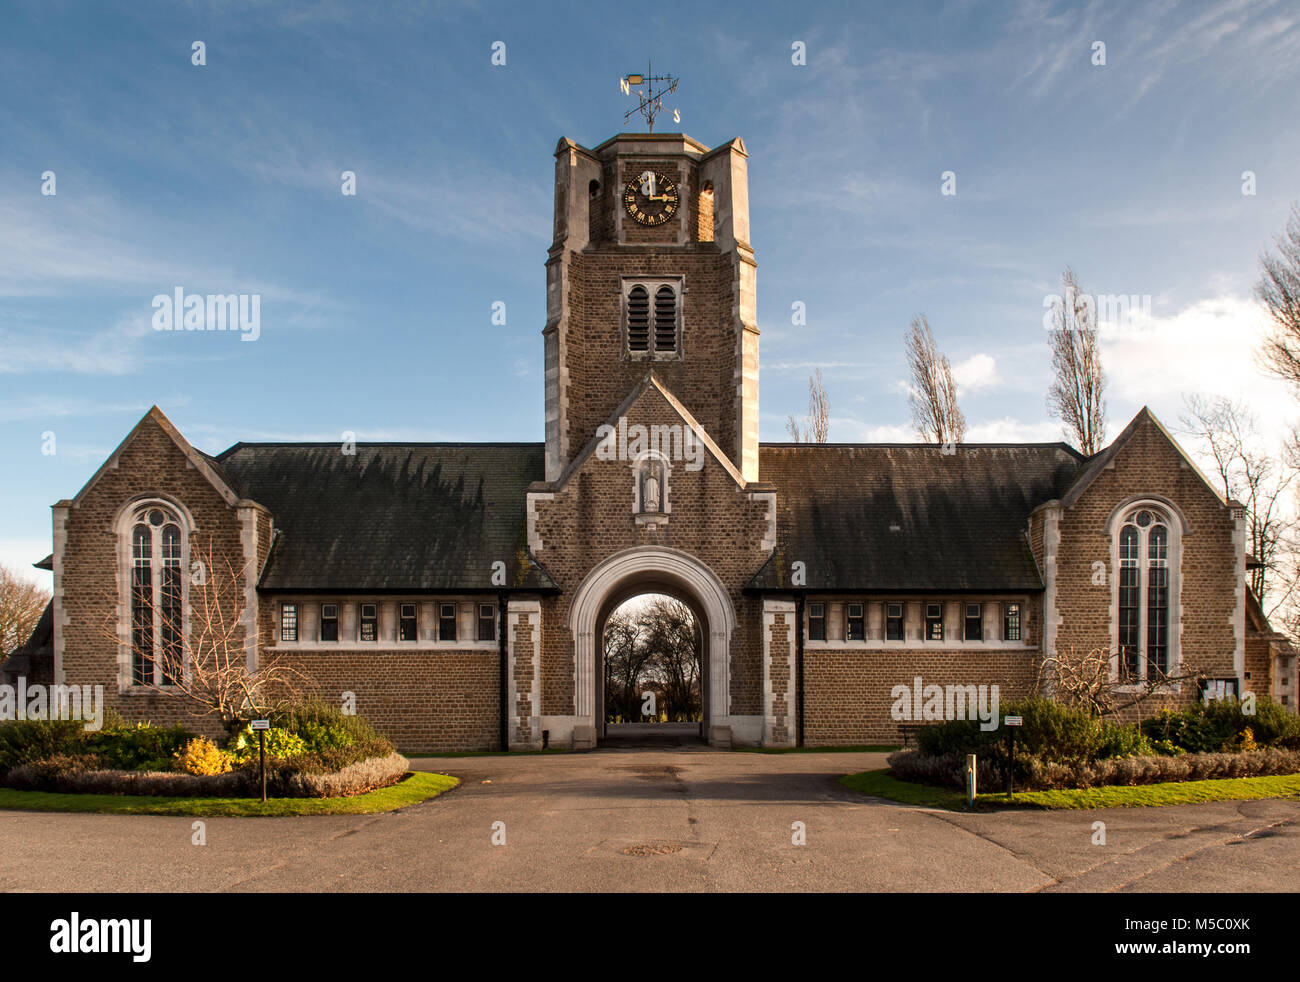 London, England, UK - January 27, 2013: The gothic mortuary chapel of Camberwell New Cemetery stands in Honor Oak - Stock Image